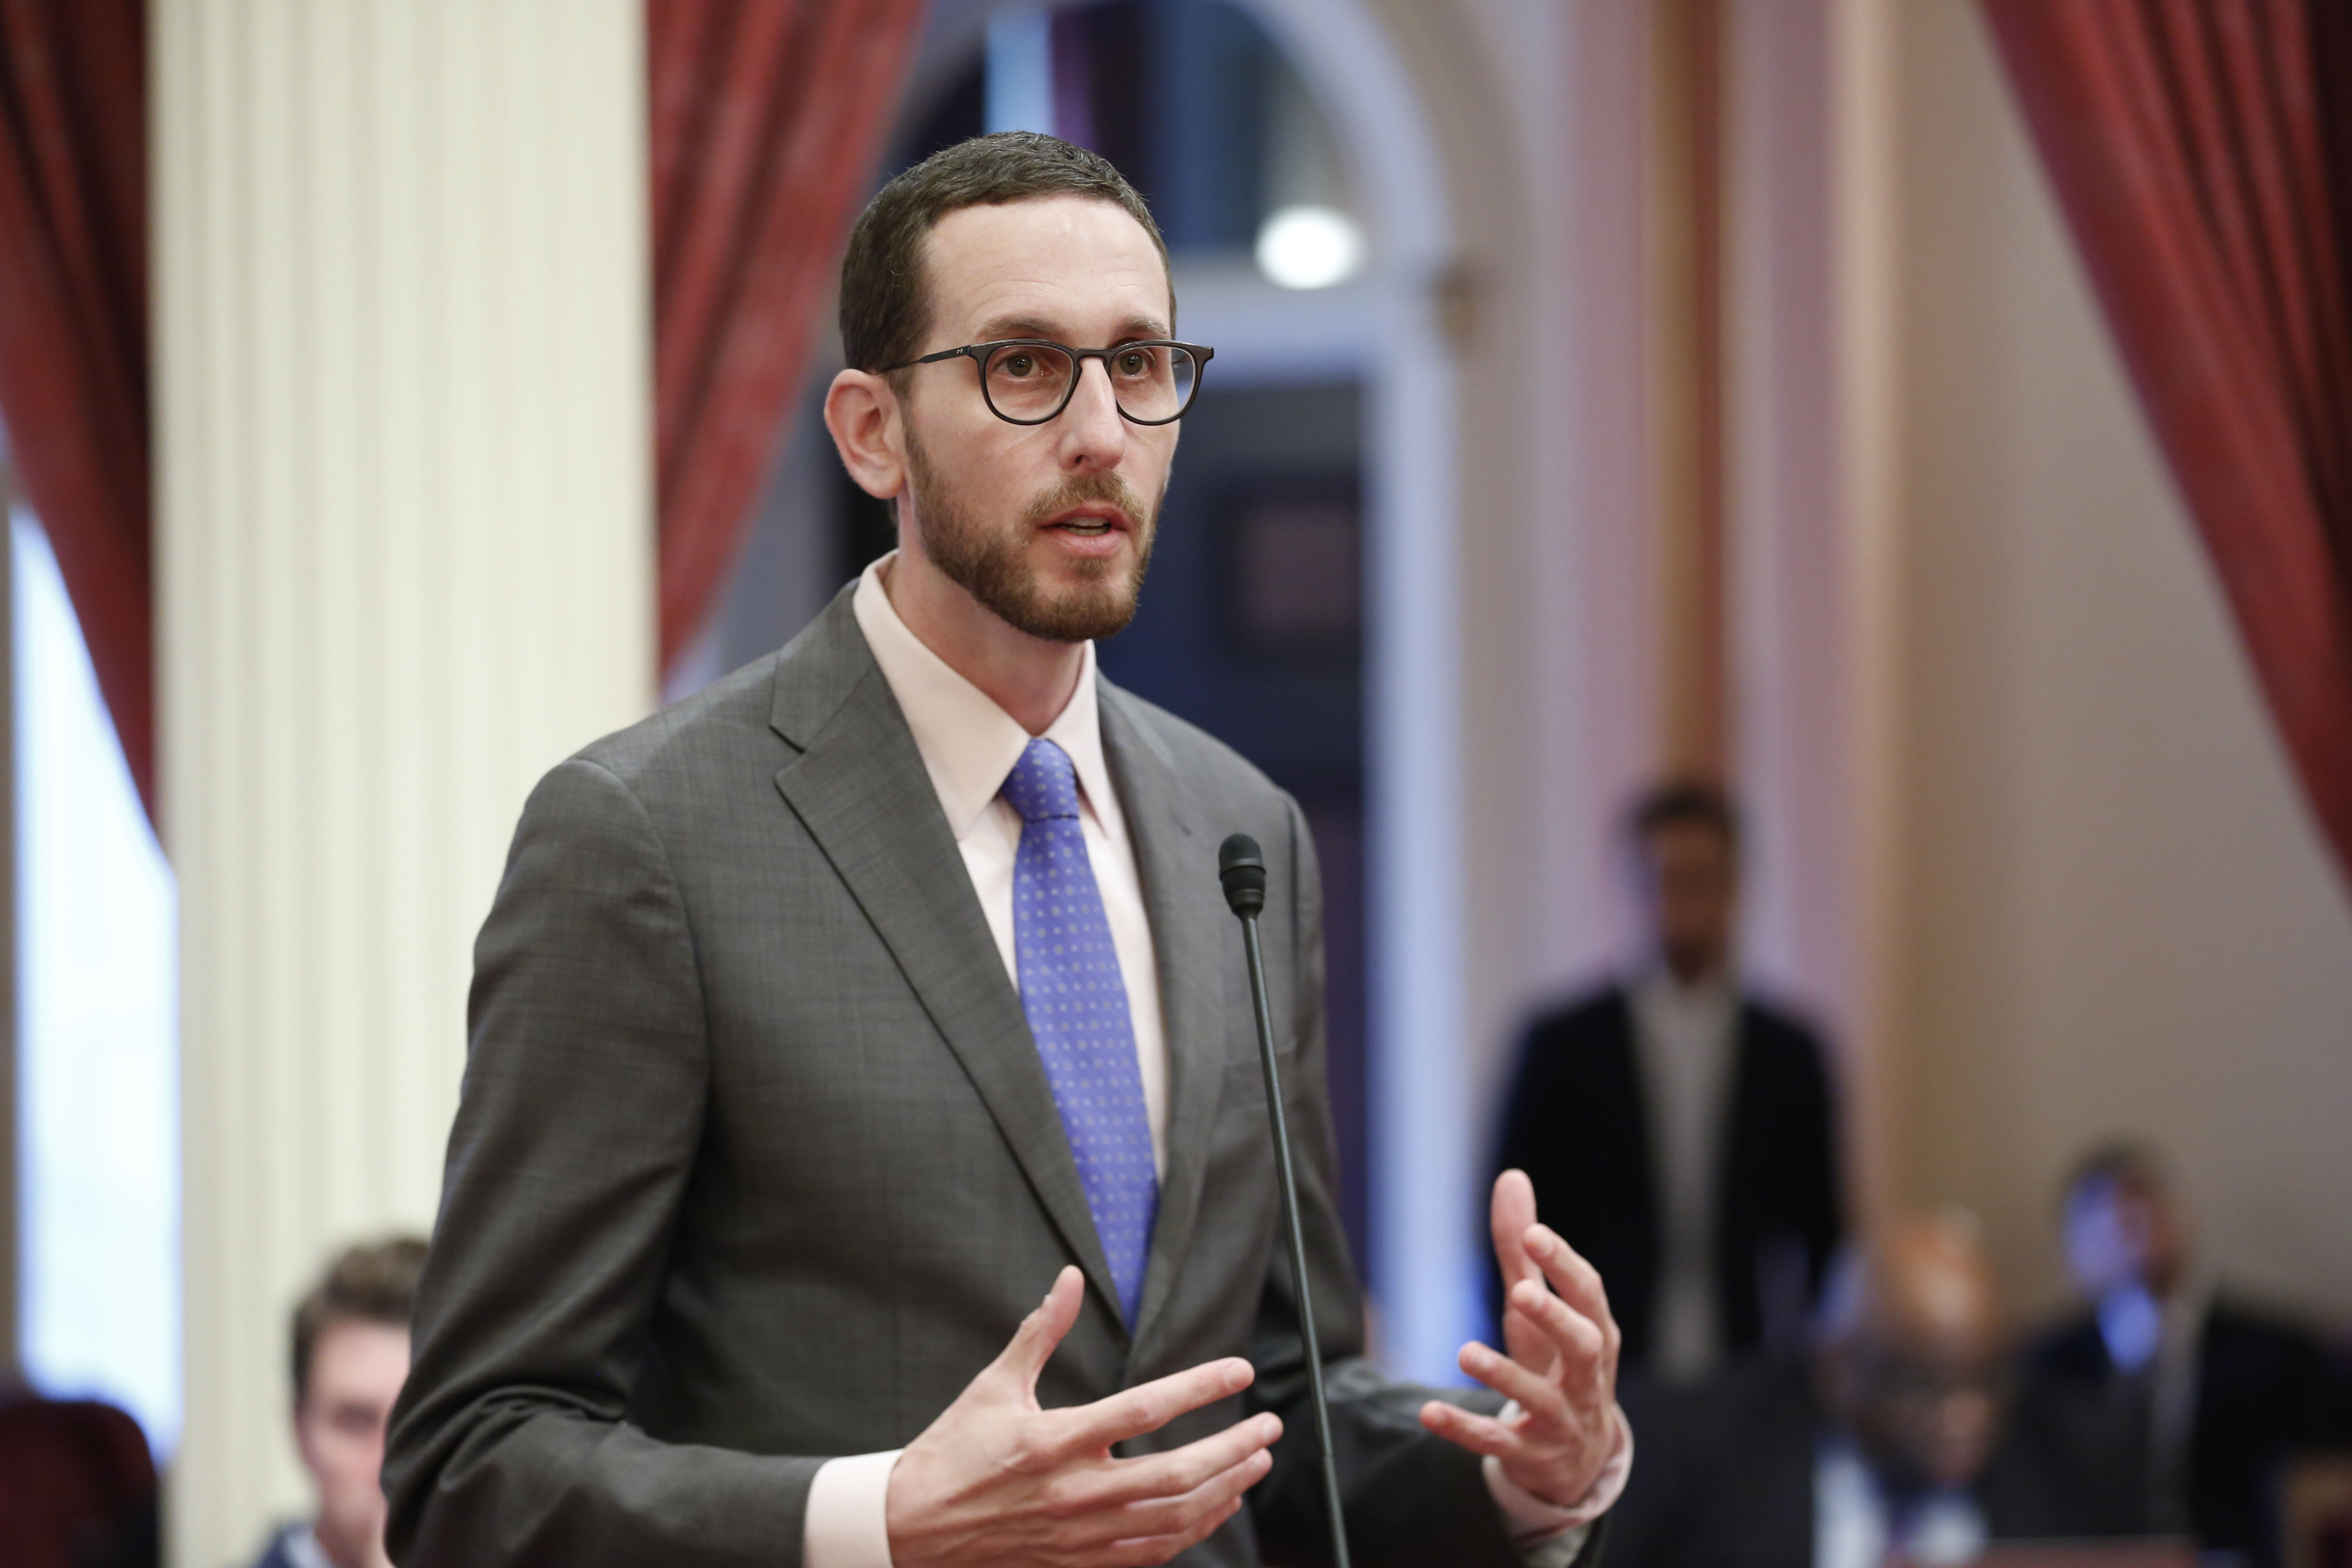 Senator Wiener on the Senate Floor